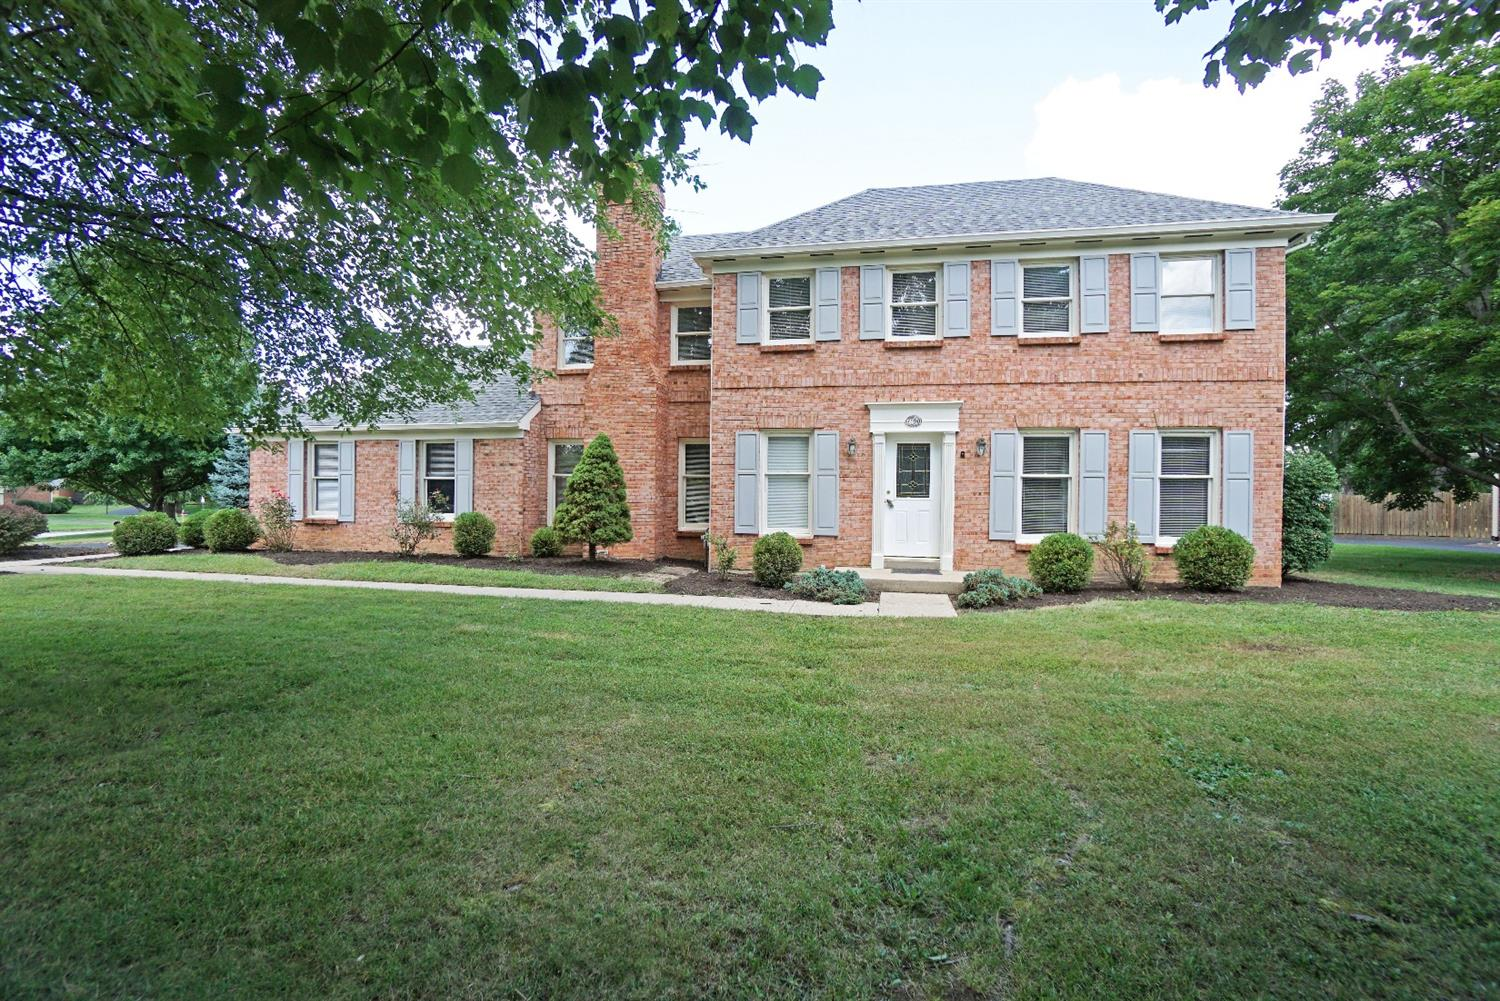 7190 Goldengate Dr Anderson Twp OH 45244 Listing Details MLS